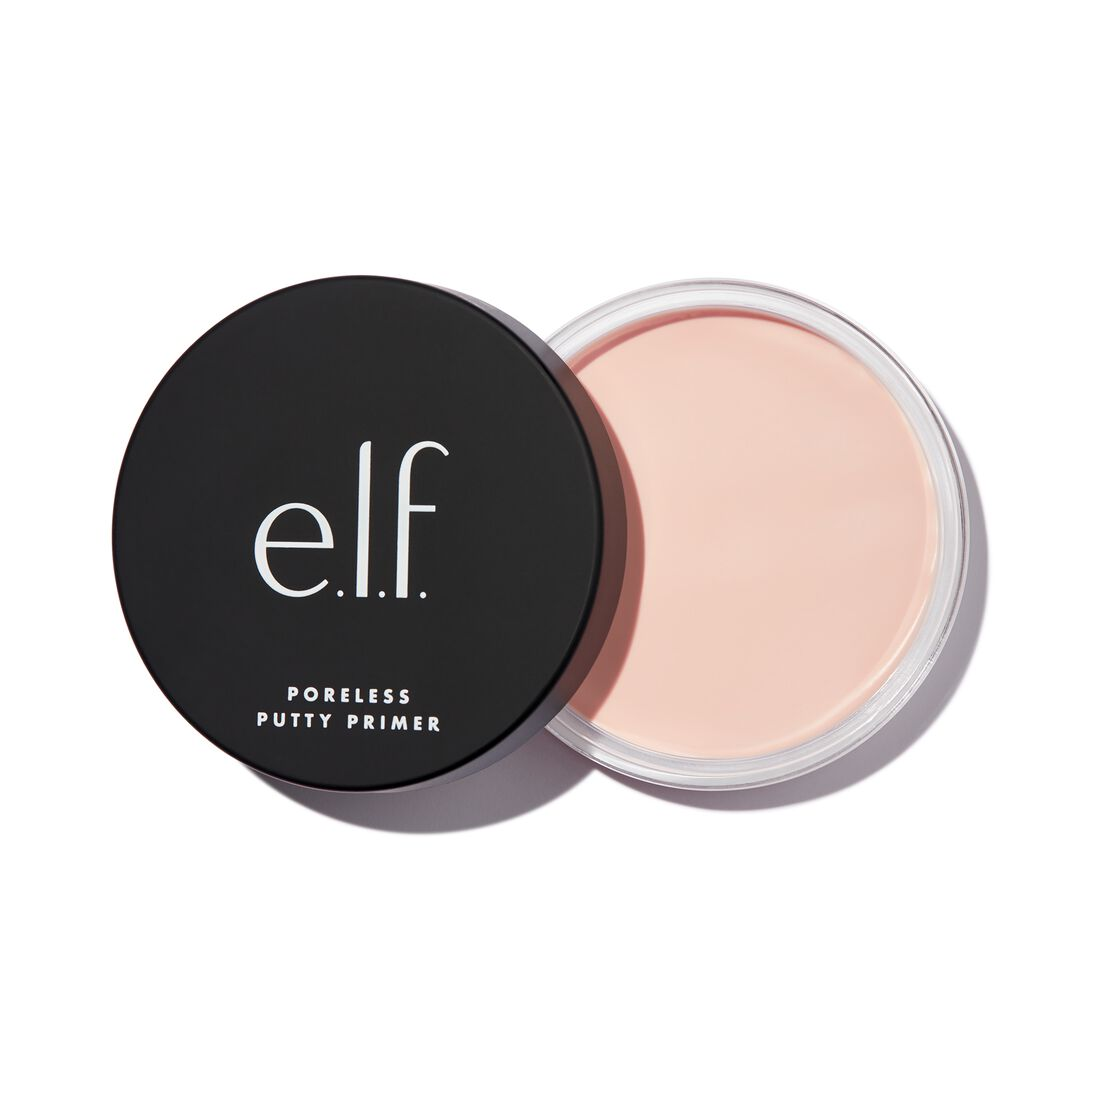 mage of ELF's Poreless Putty Primer